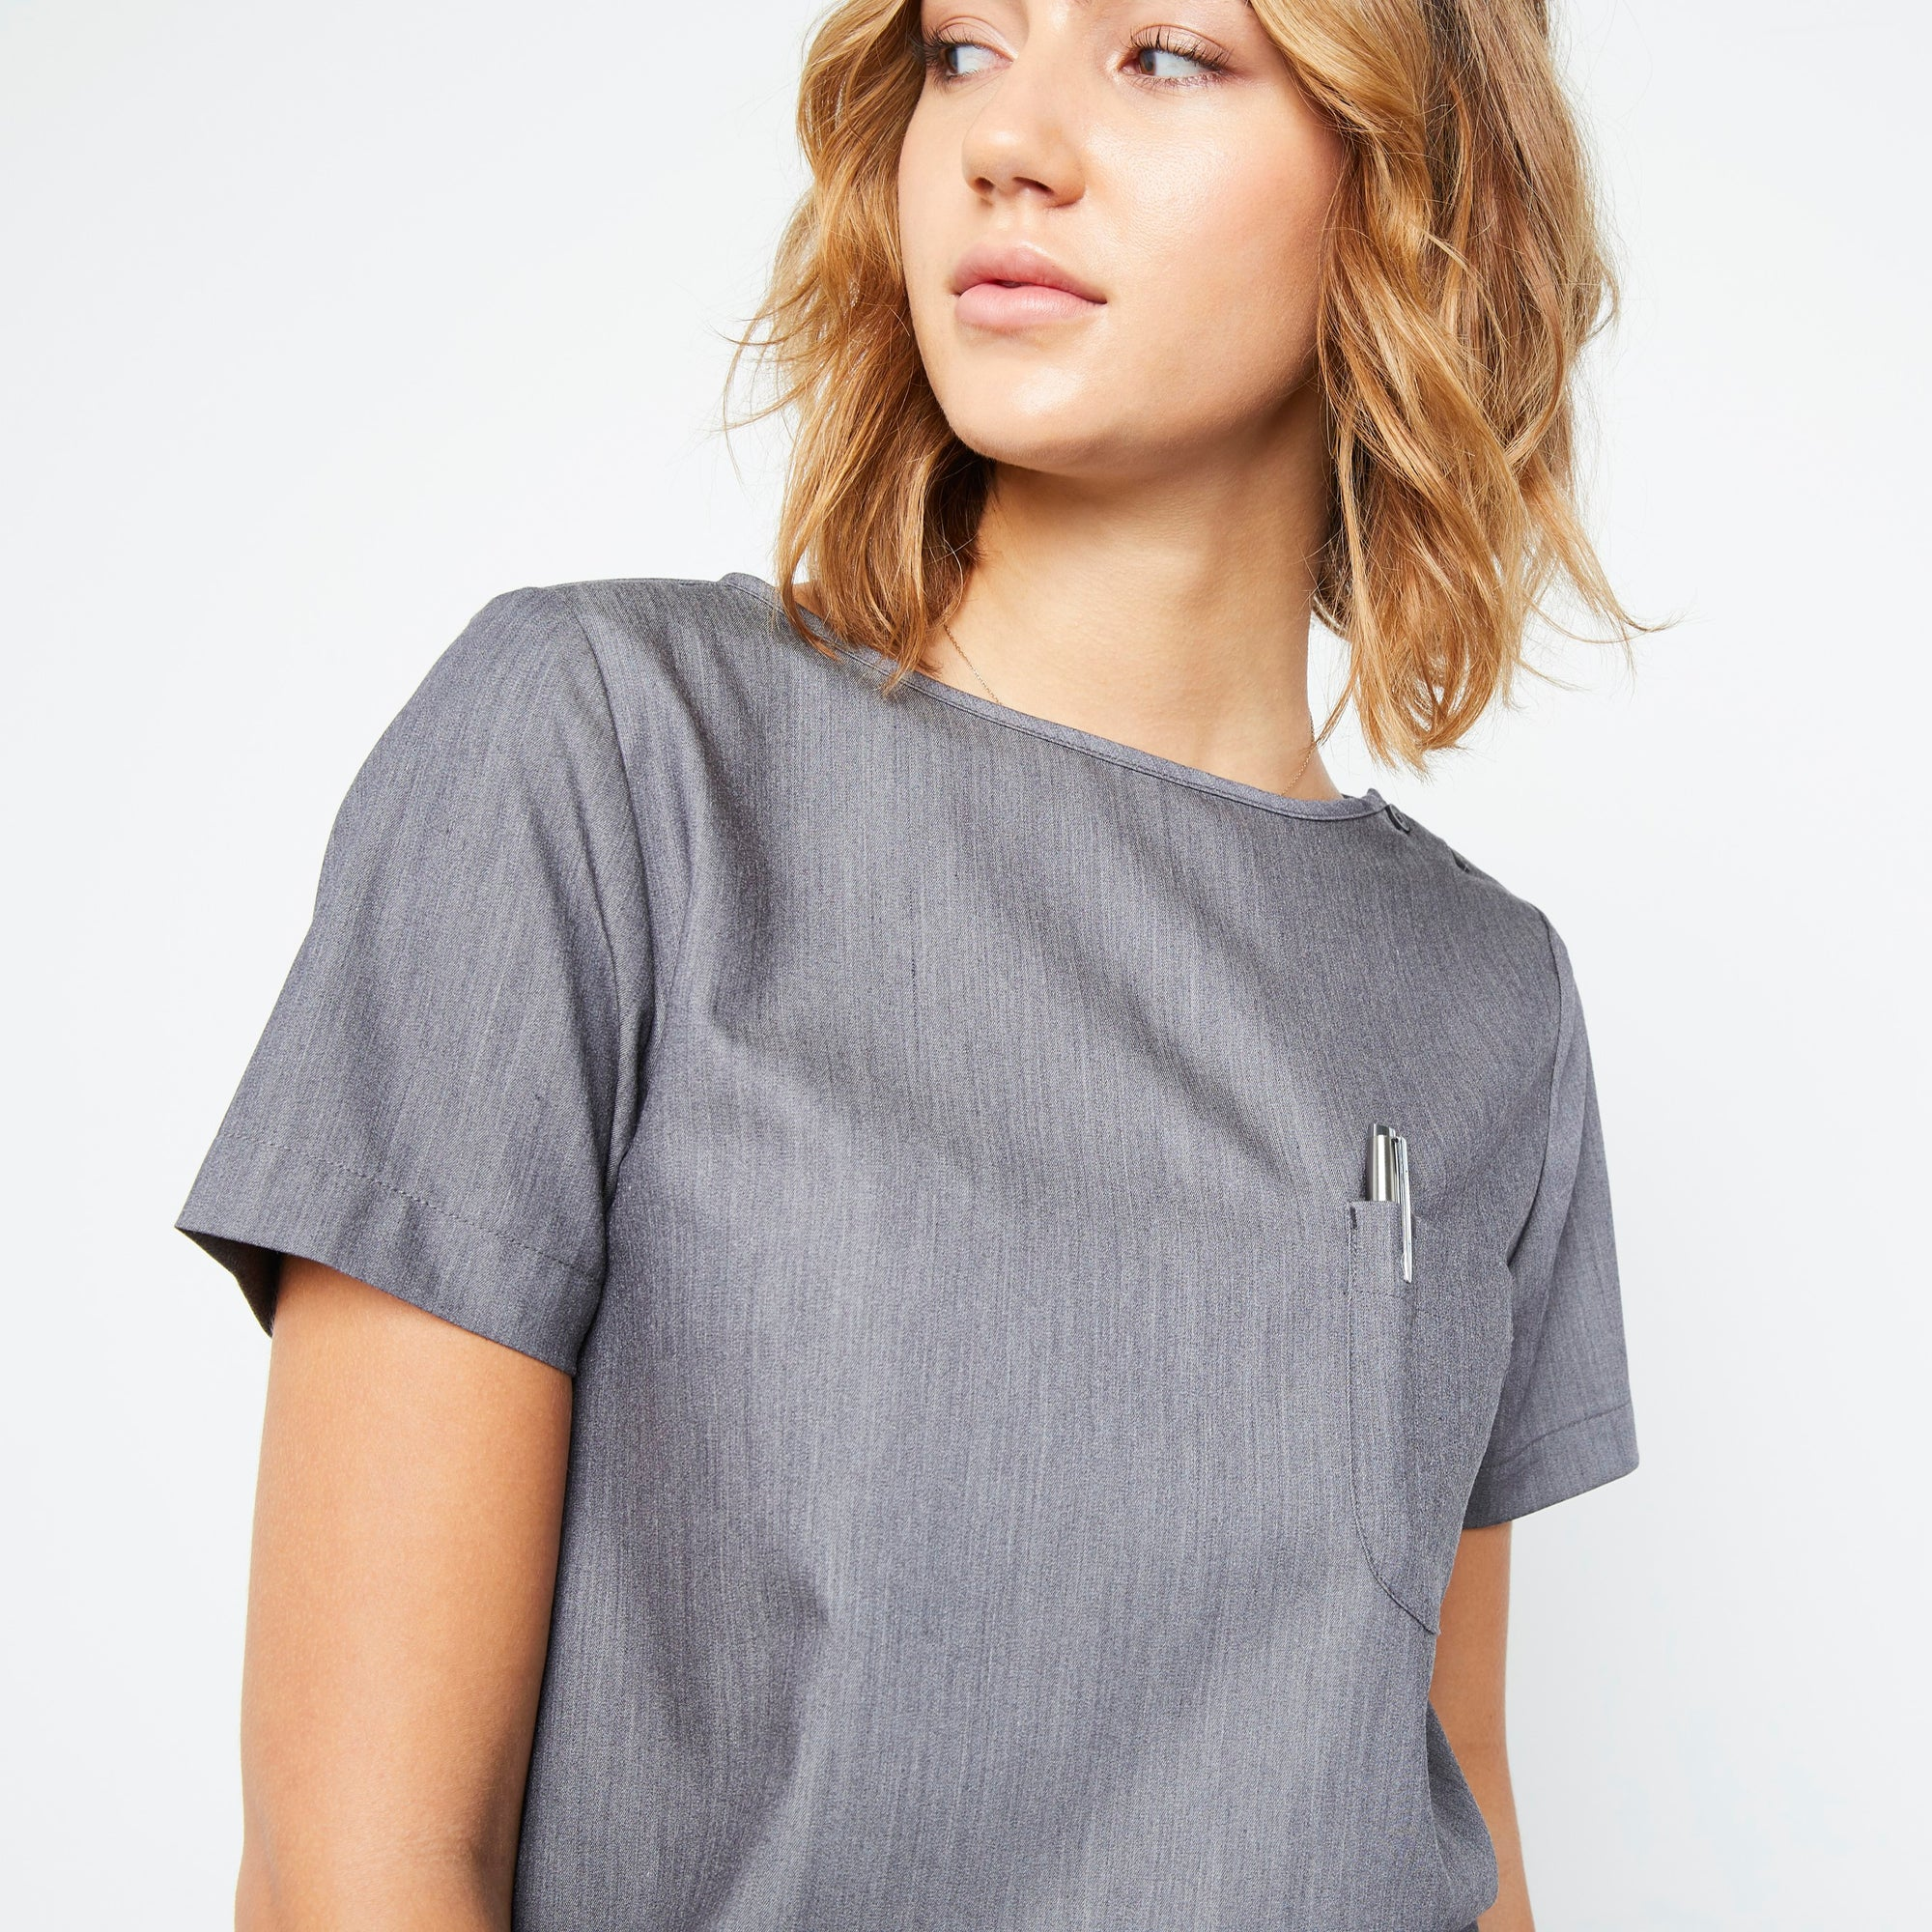 Harley Top (Granite Smoothie) XXS | Fabled makes designer scrub fashions, cute dental scrubs, and cute vet scrubs. All Fabled's cute scrubs made in USA.